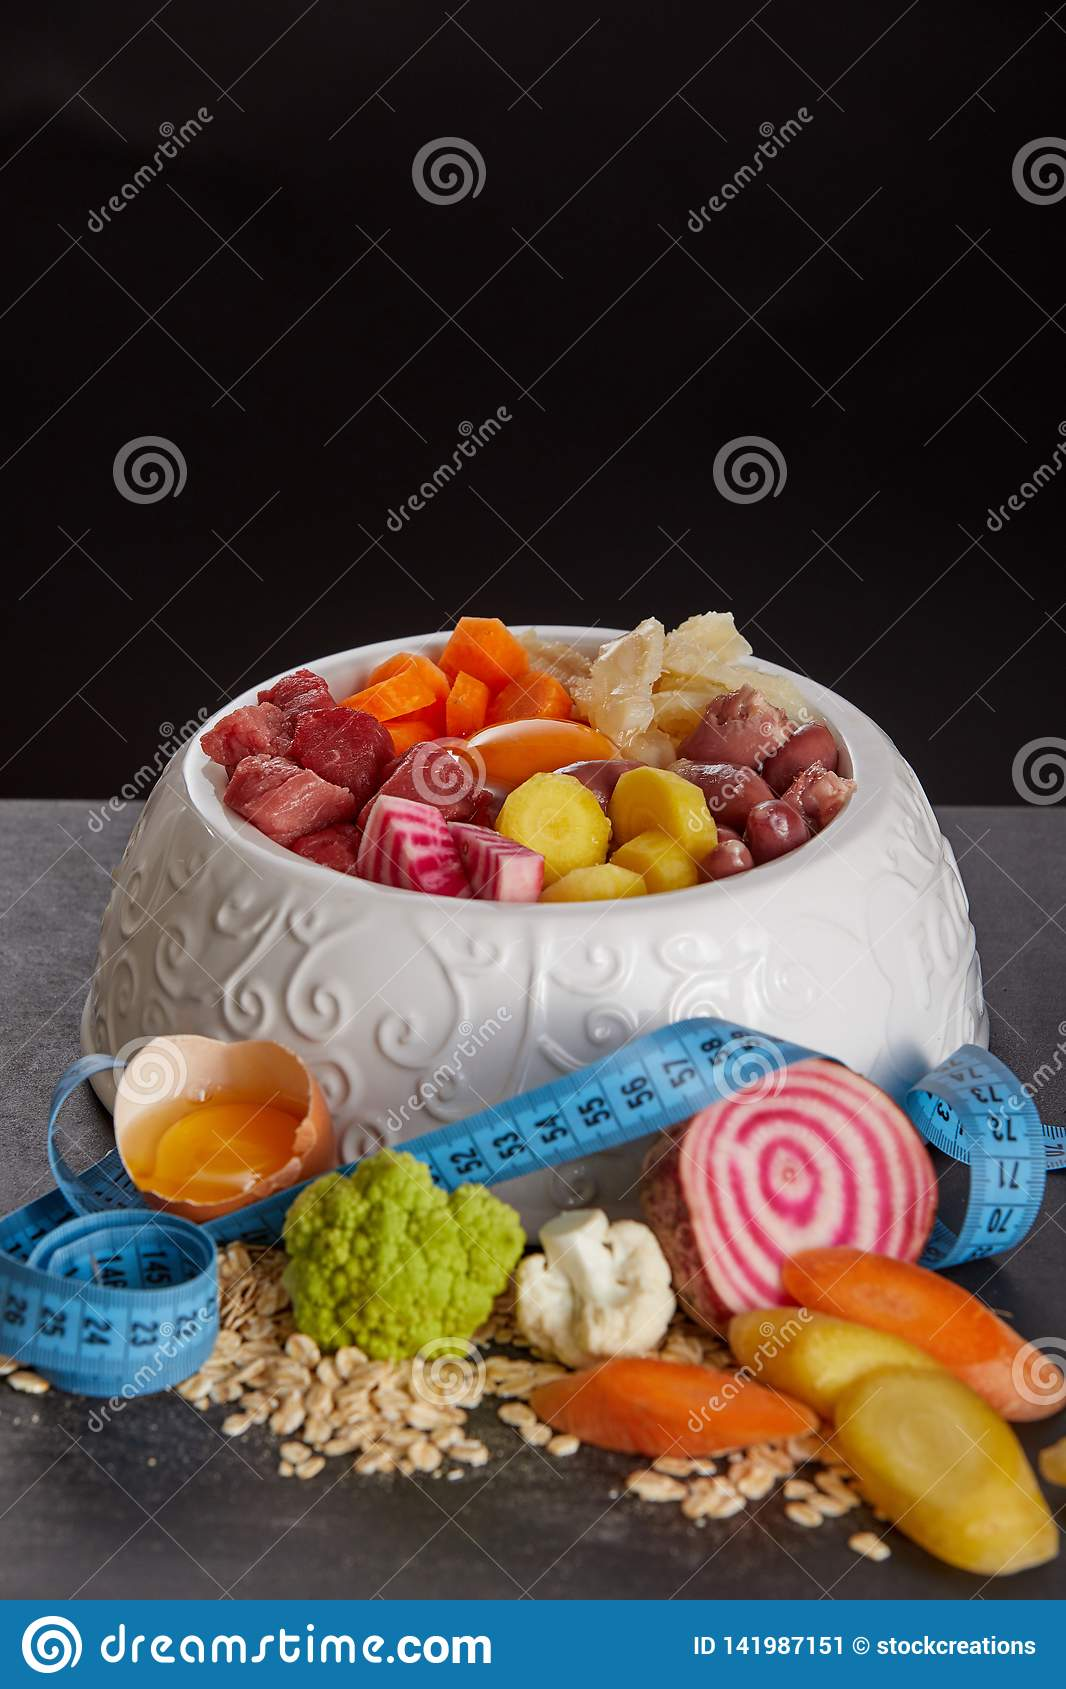 Bowl of barf food mix against black background